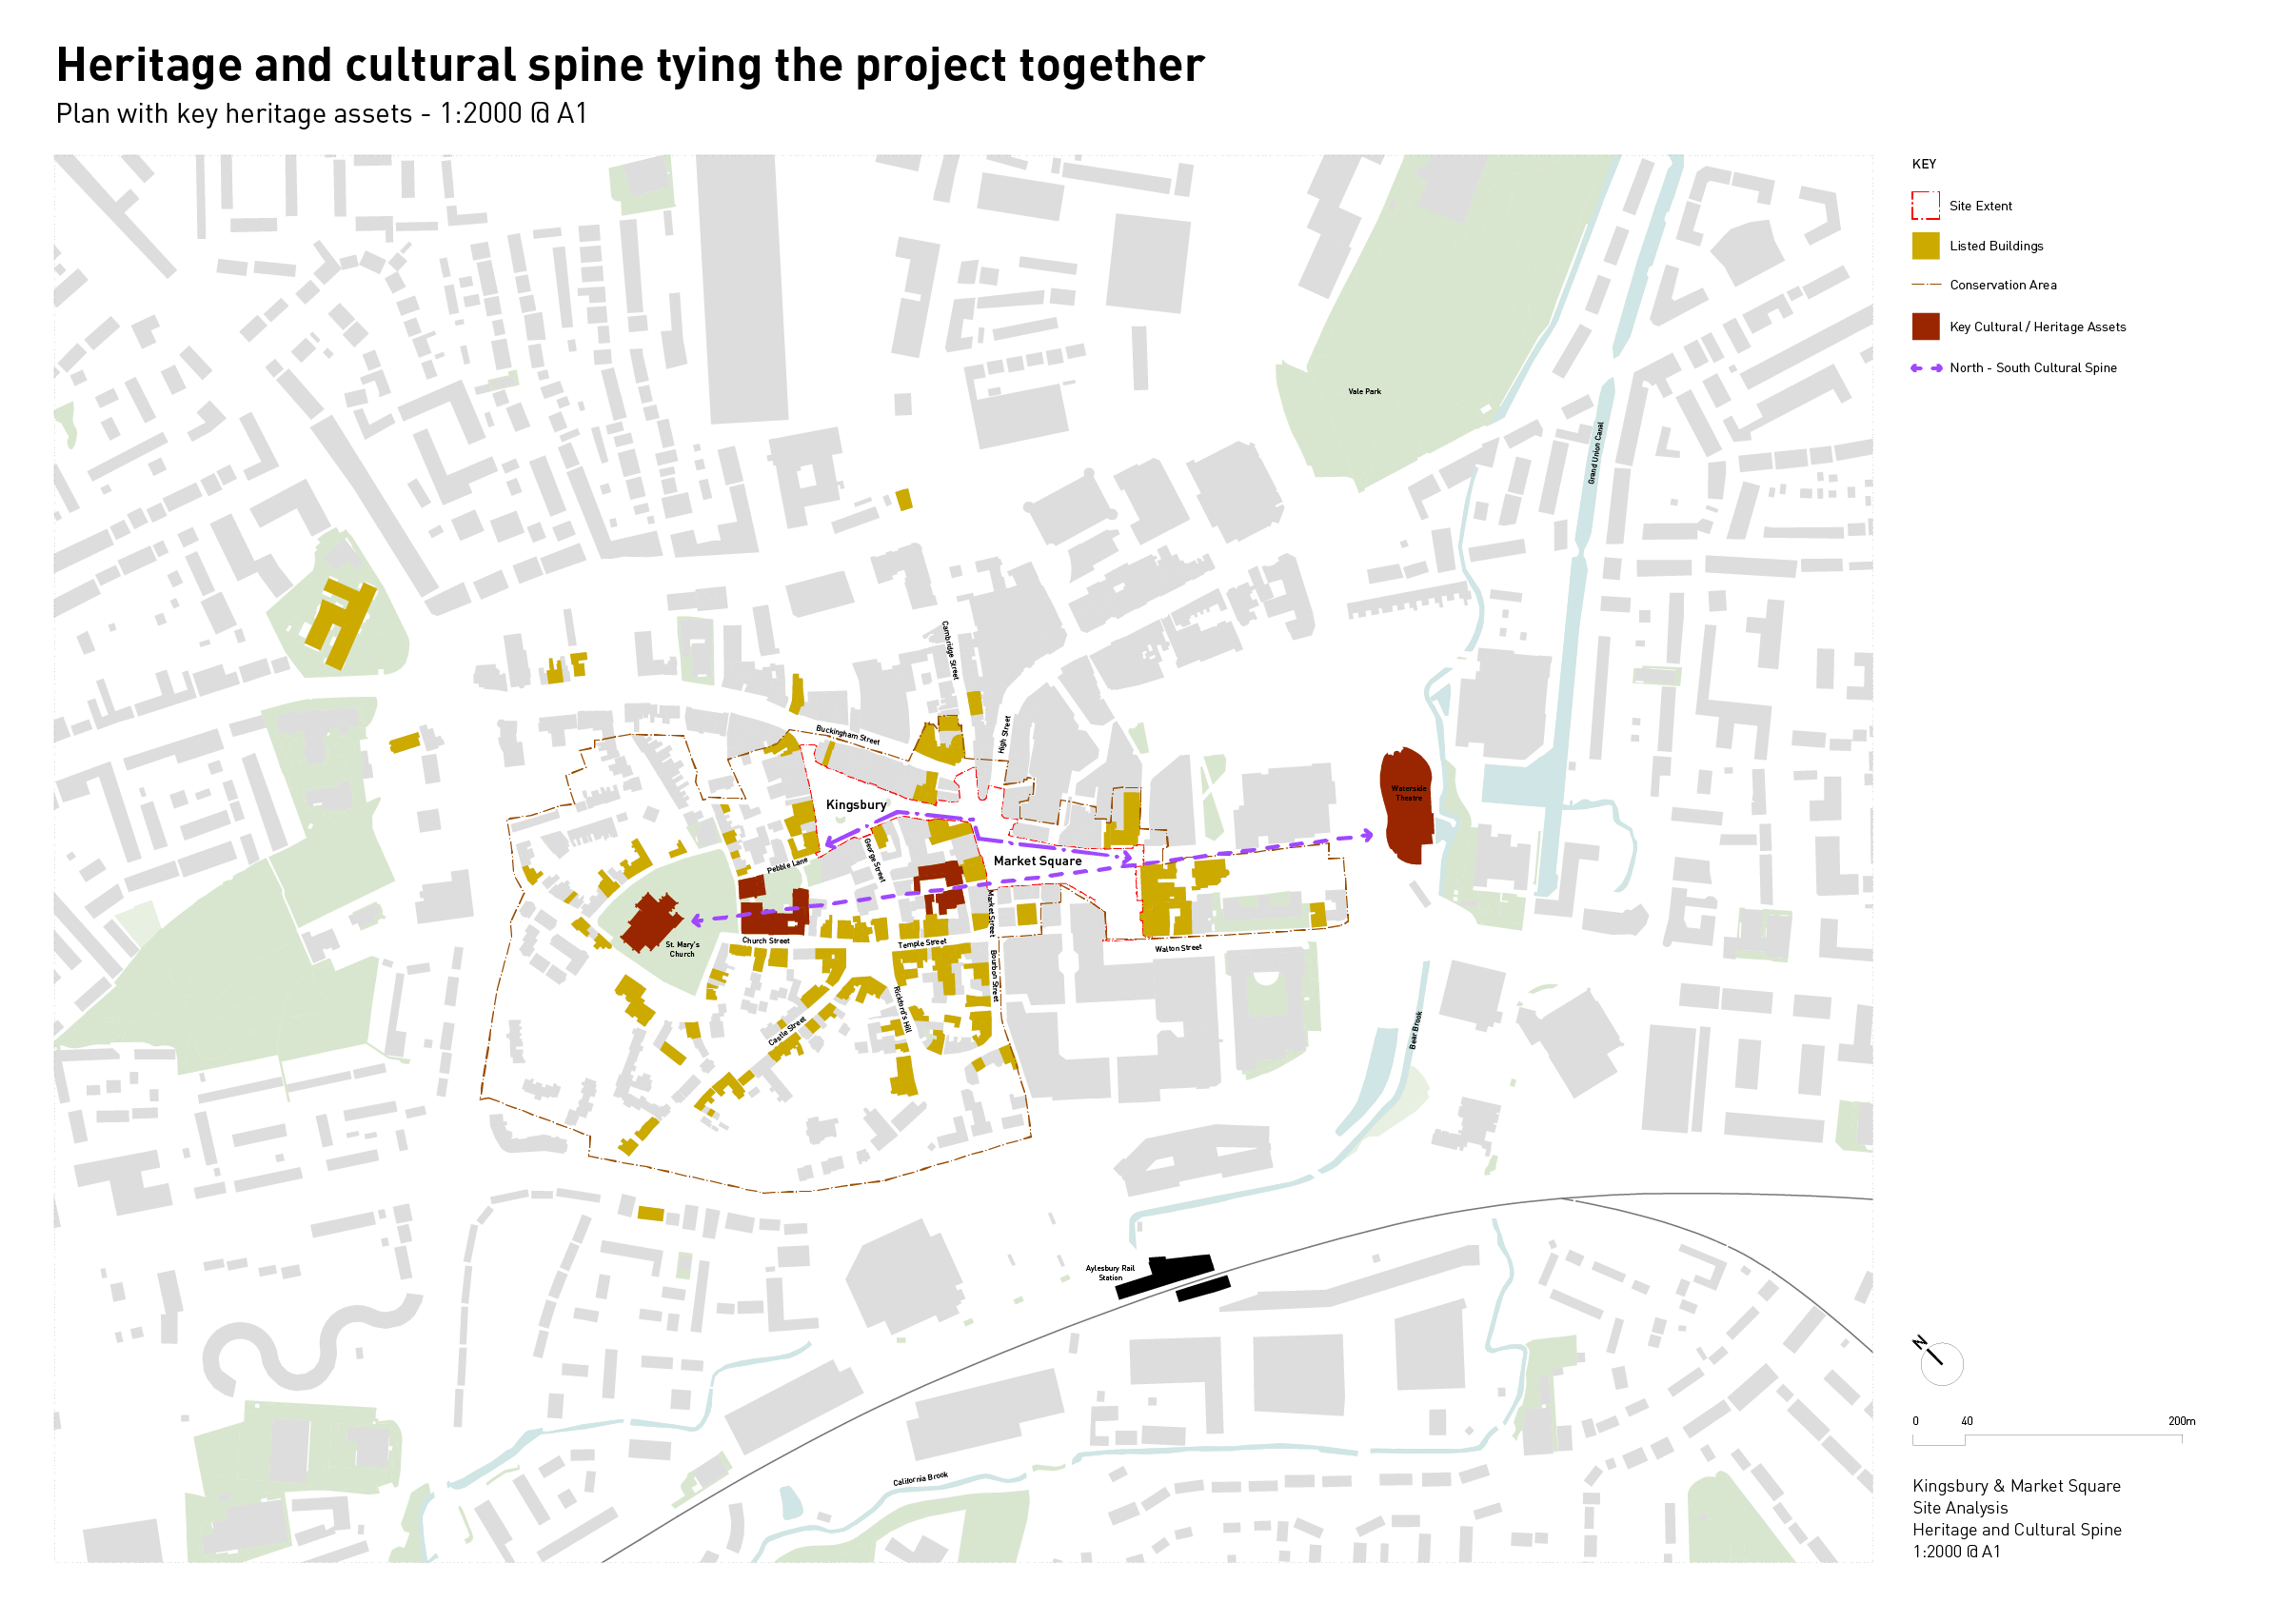 Diagram showing a heritage and cultural spine running N-S through Kingsbury and Market Square